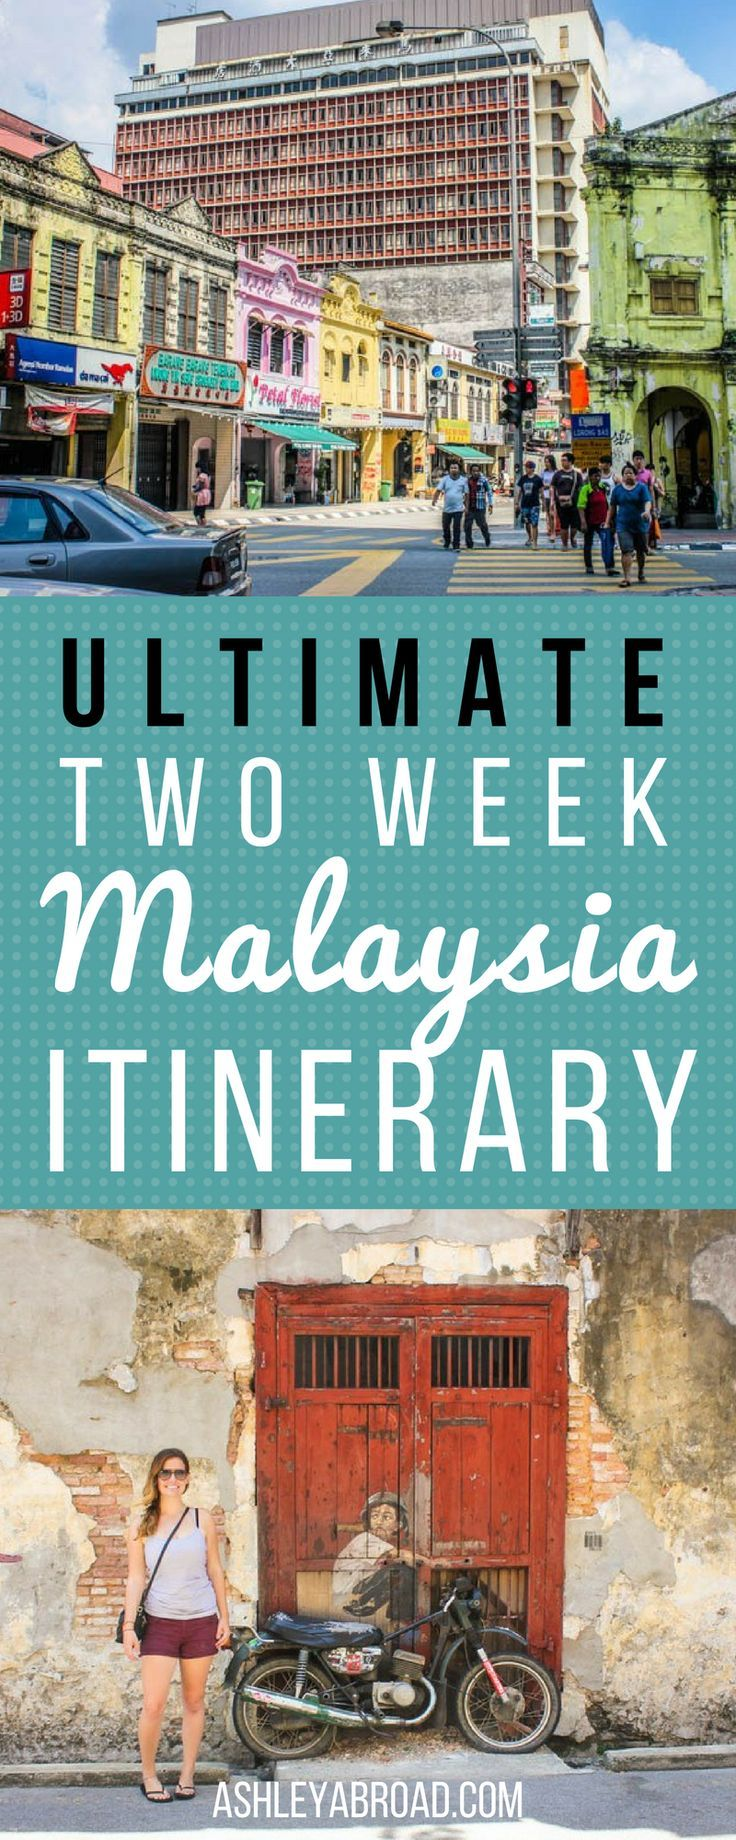 The Ultimate Two Week Malaysia Itinerary. Malaysia is a country of diverse and vibrant cities, verdant rice paddies and wild, red-earthed jungle. Second only to Singapore, Malaysia is the richest country in Southeast Asia, making public transit a breeze and the level of English impressively high. The high level of English make meeting locals much easier than in other parts of Southeast Asia, save Singapore. | Ashley Abroad